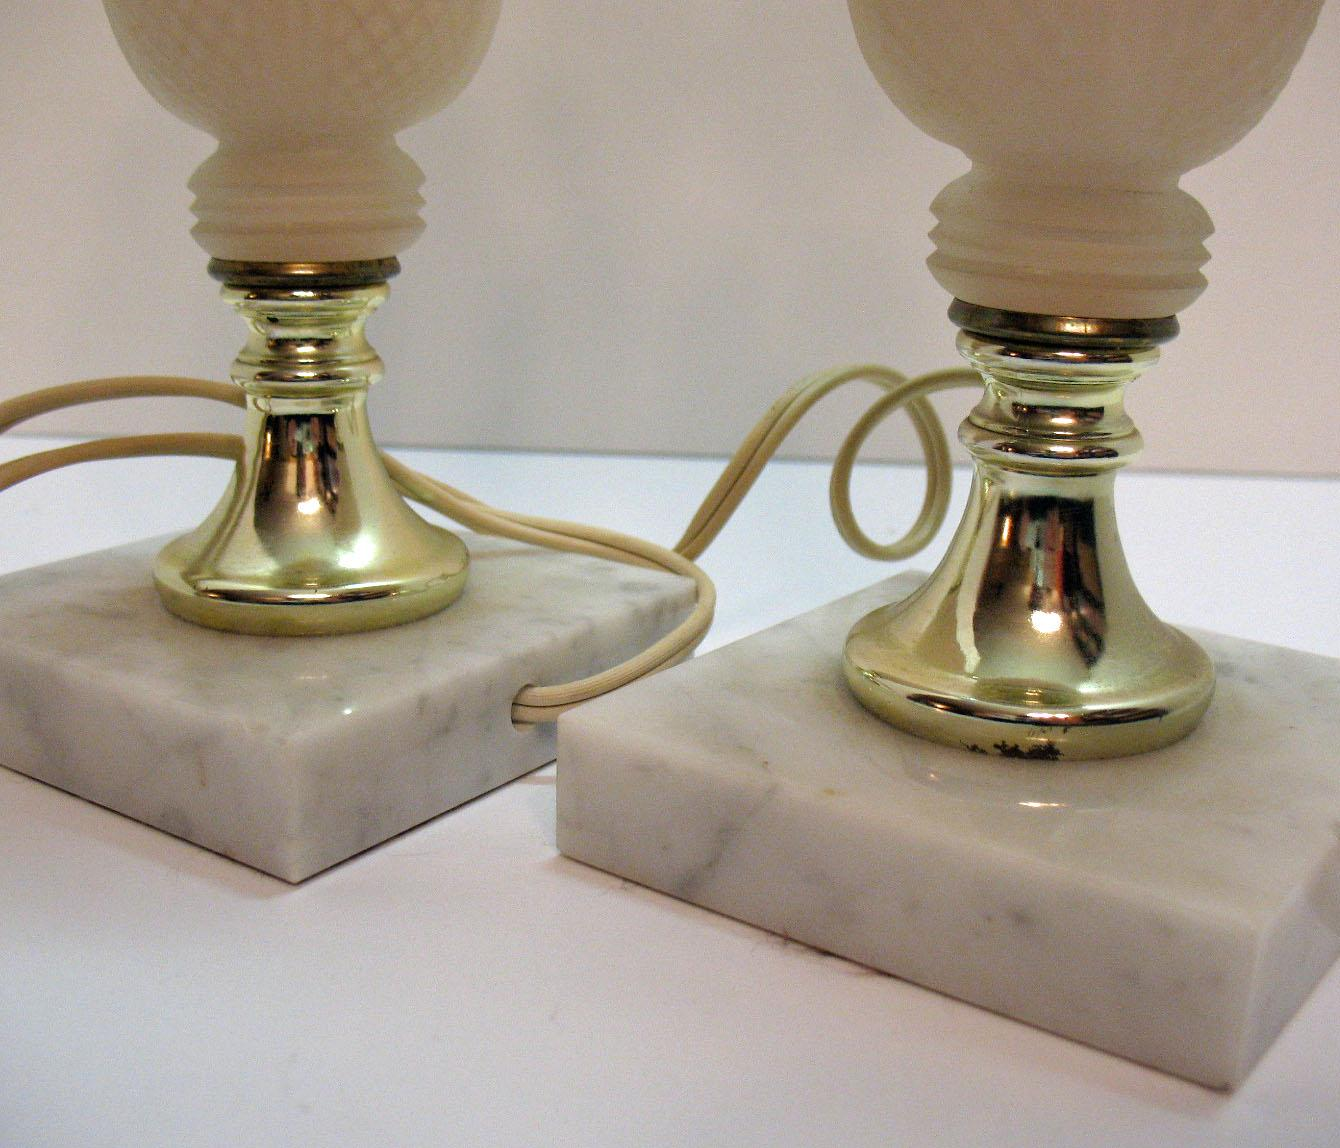 Vintage Alabaster Table Lamps 1950 60s Made In Italy Lamps